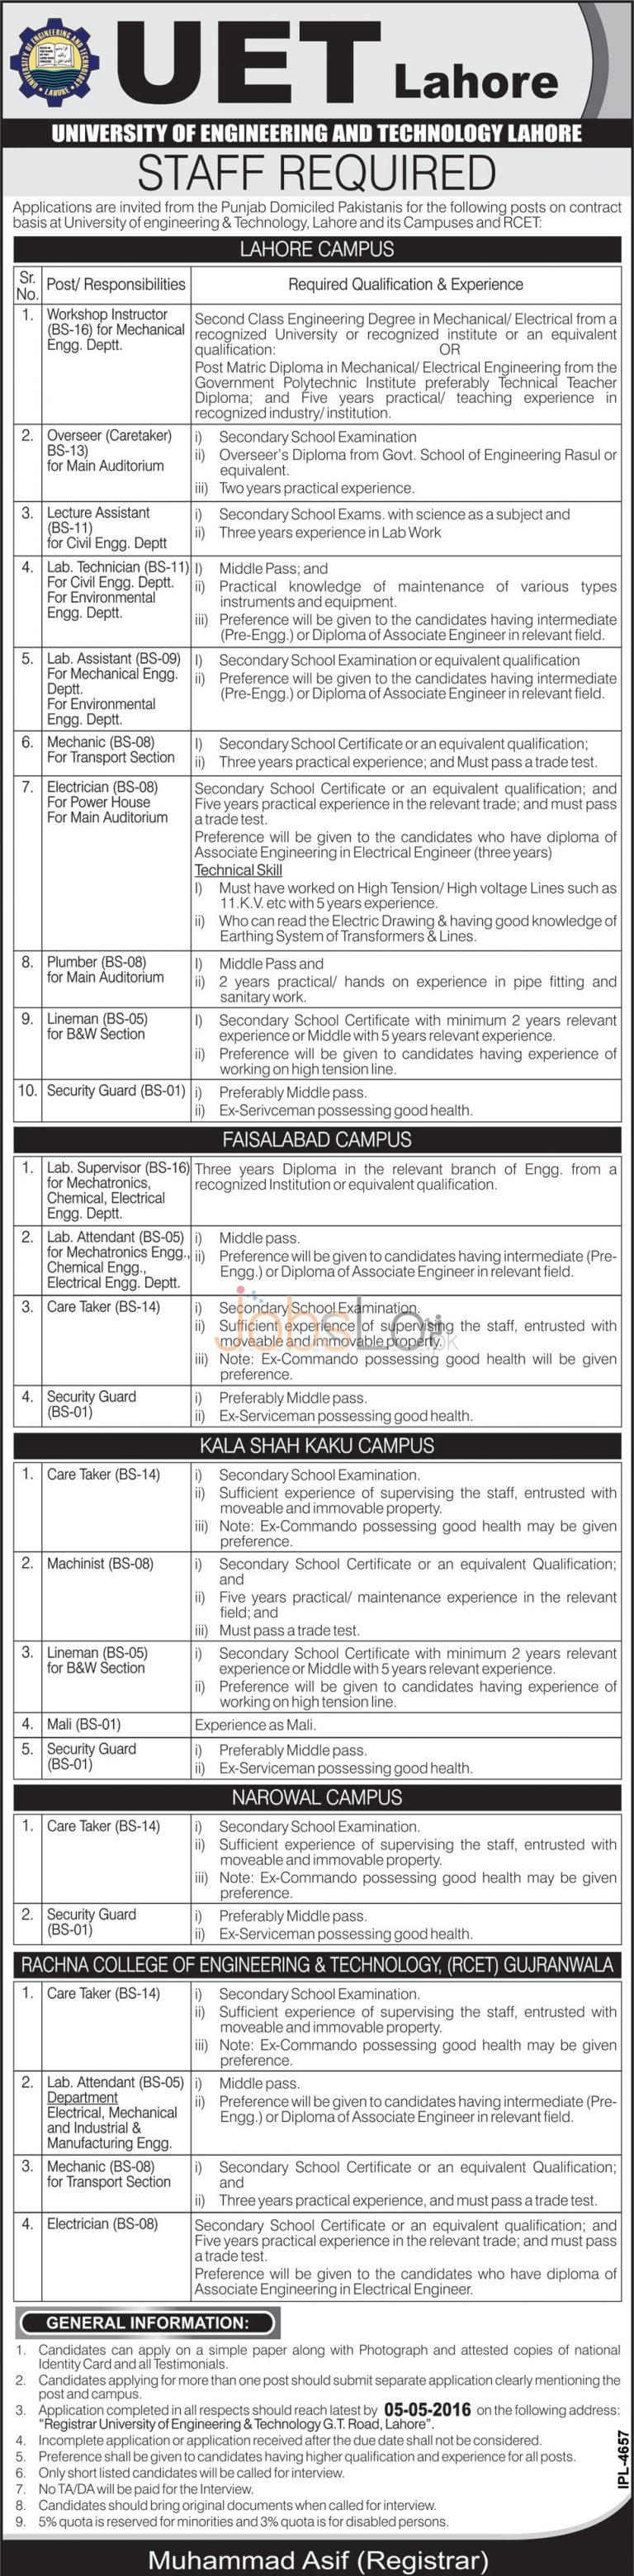 UET Lahore Jobs April 2016 Staff Required Latest Add